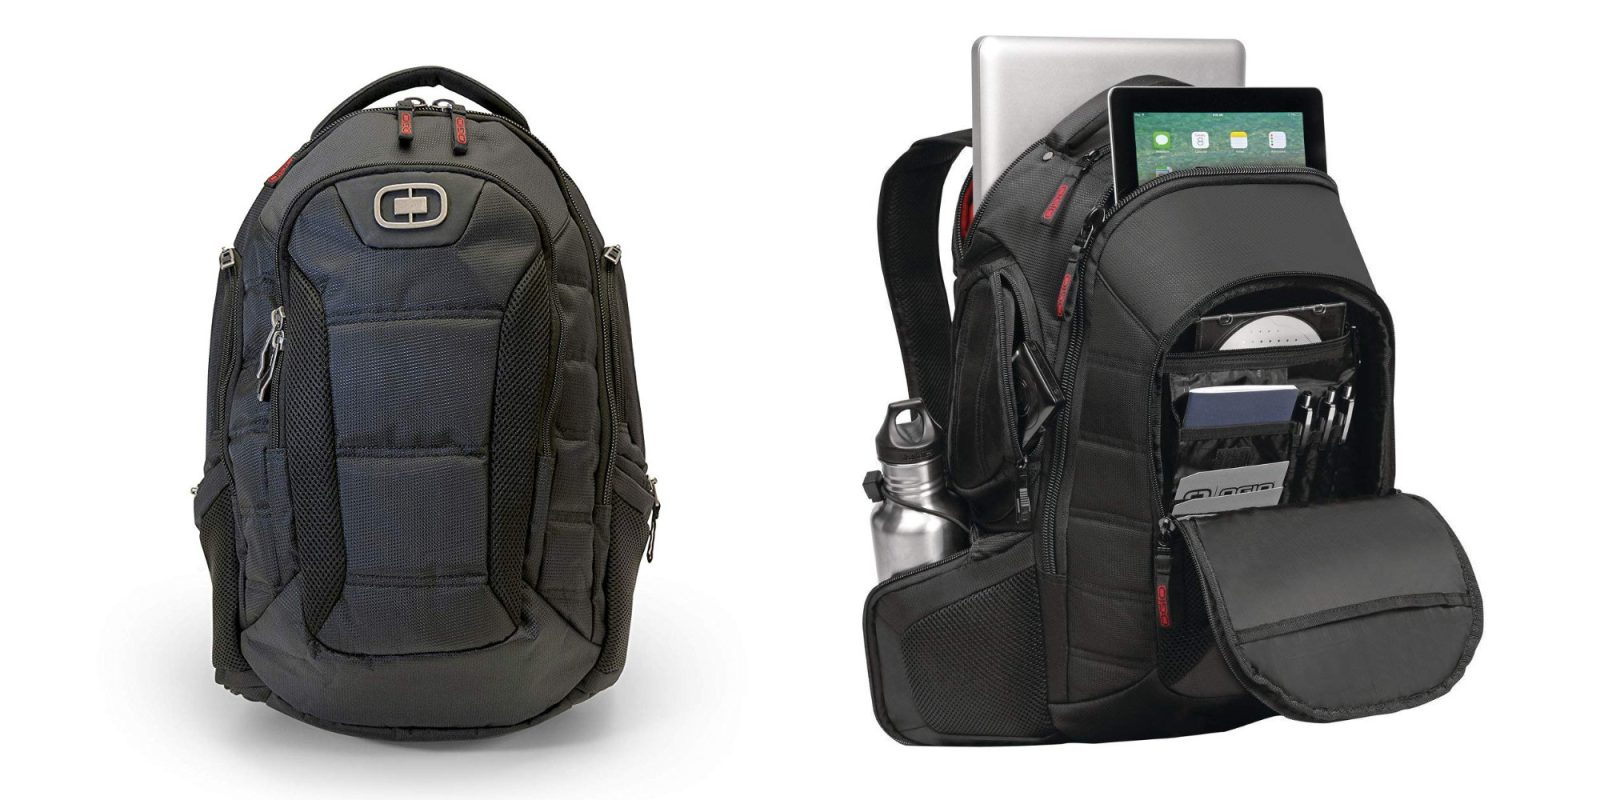 The OGIO Bandit Backpack carries an iPad, MacBook, more at $63 (Save $20+)